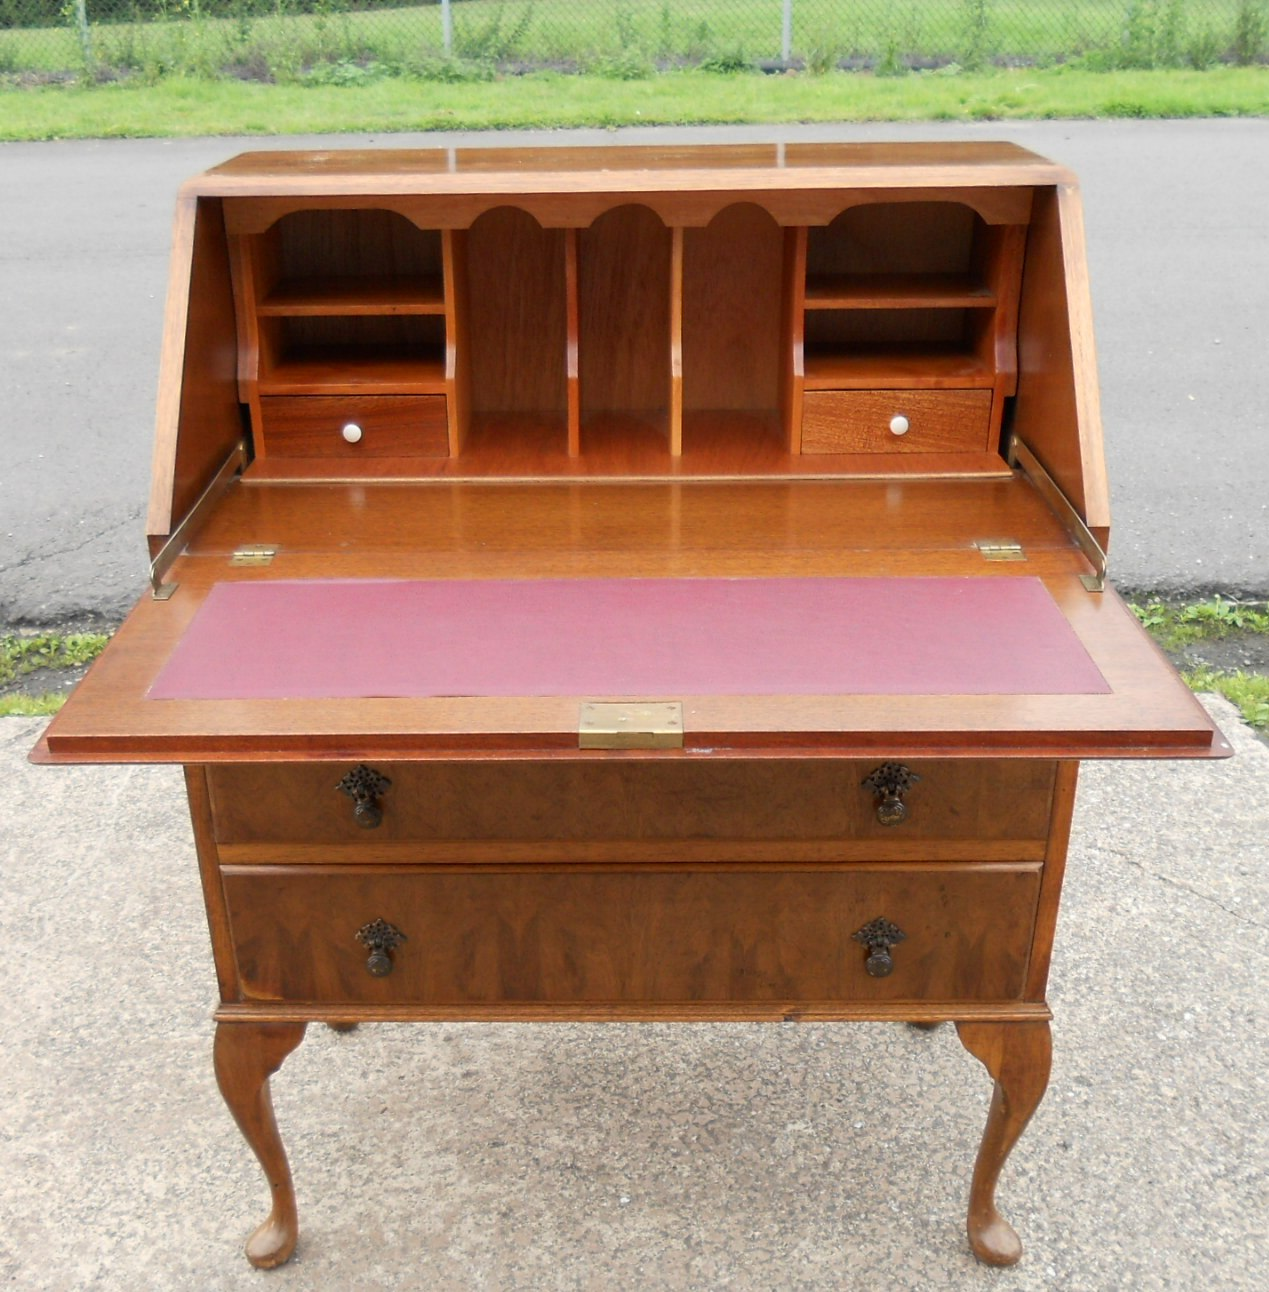 Walnut Writing Bureau in the Queen Anne Style : walnut writing bureau in the queen anne style 4 3340 p from www.affordableantiquefurniture.co.uk size 1269 x 1292 jpeg 346kB